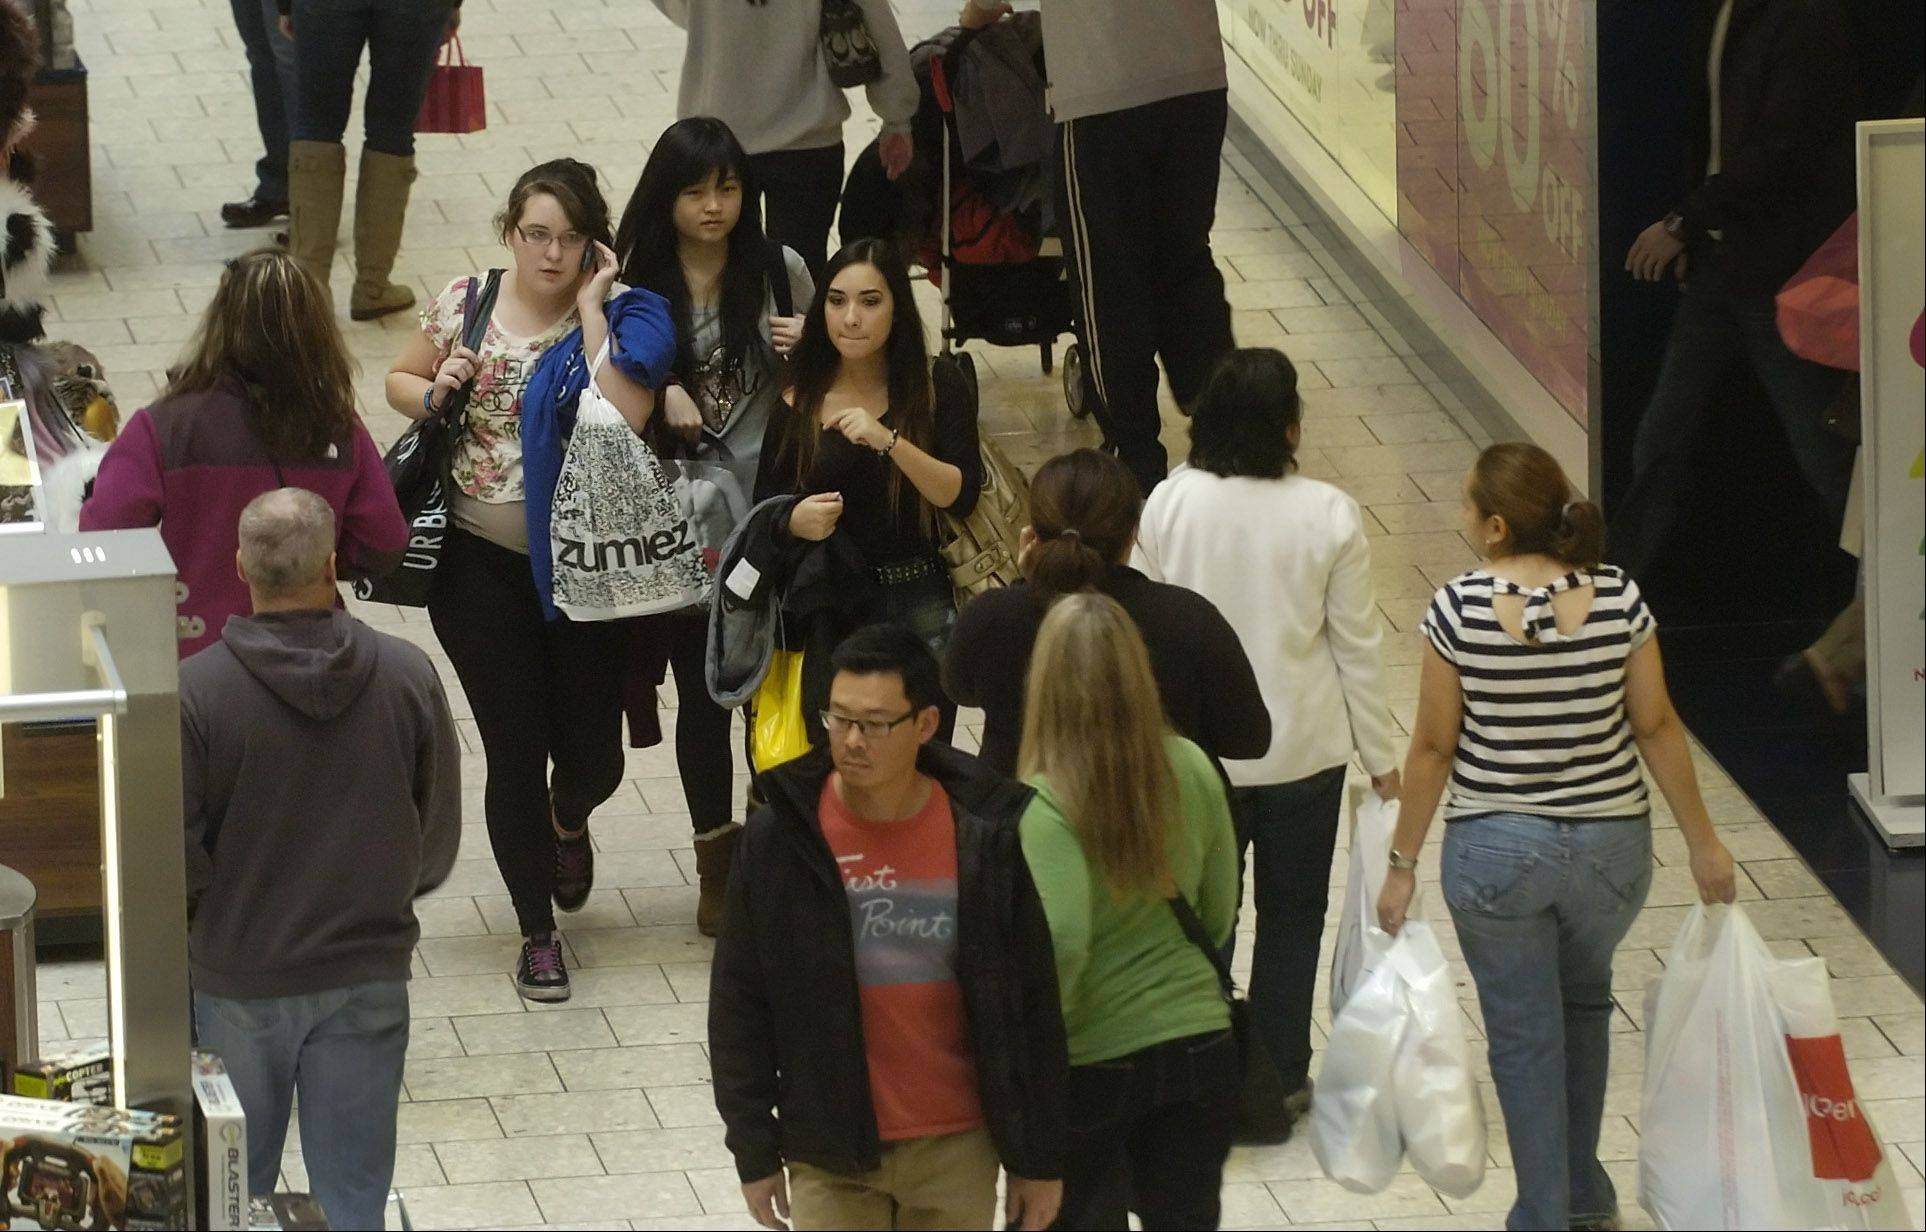 Shoppers look for bargains as they navigate Woodfield Mall in Schaumburg on Black Friday.